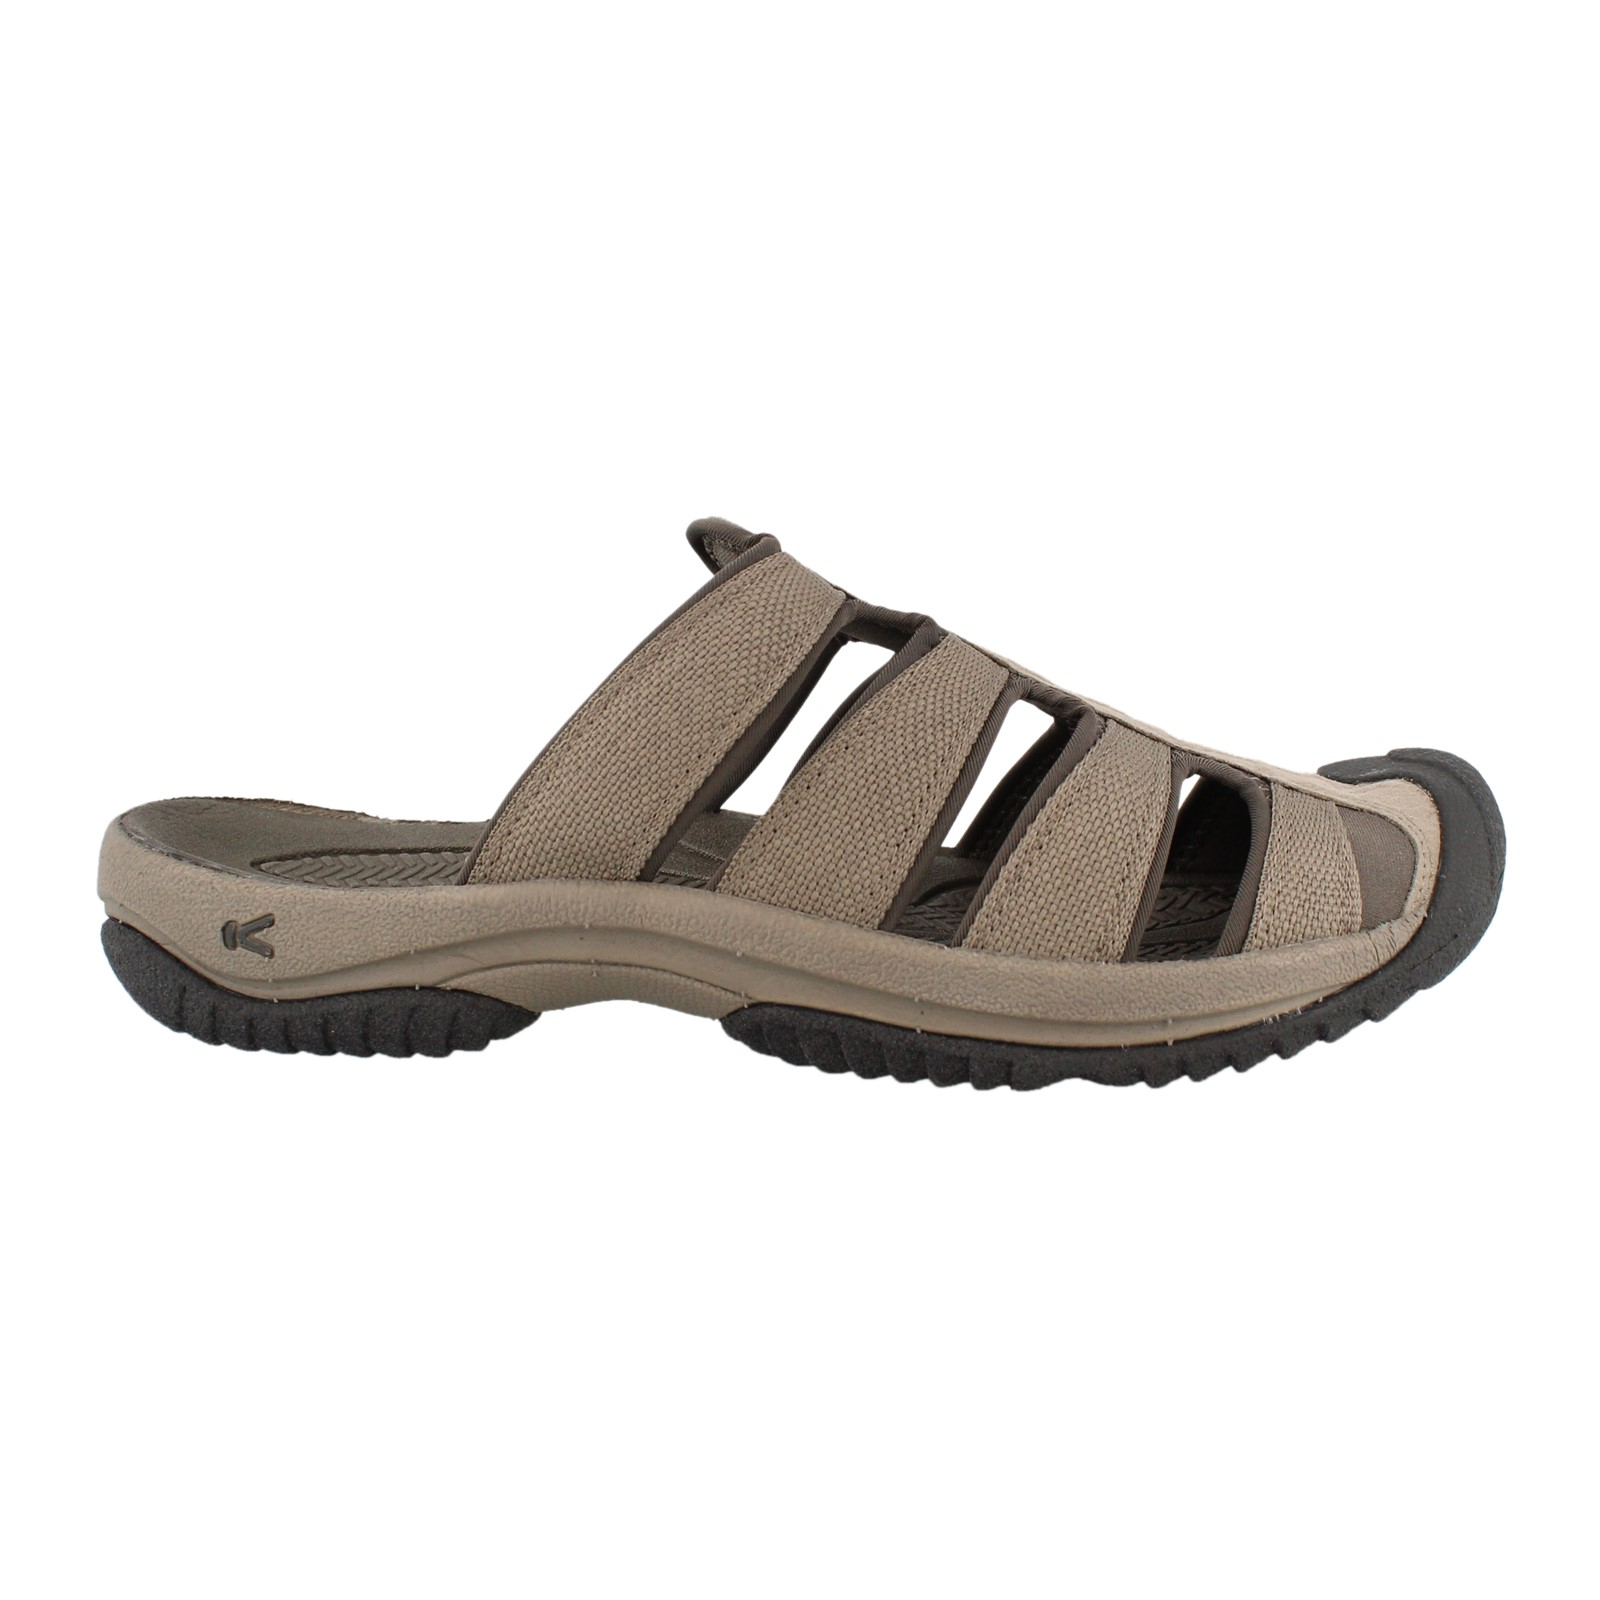 49e6bee12647ad Men's Keen, Aruba II Sandals | Peltz Shoes